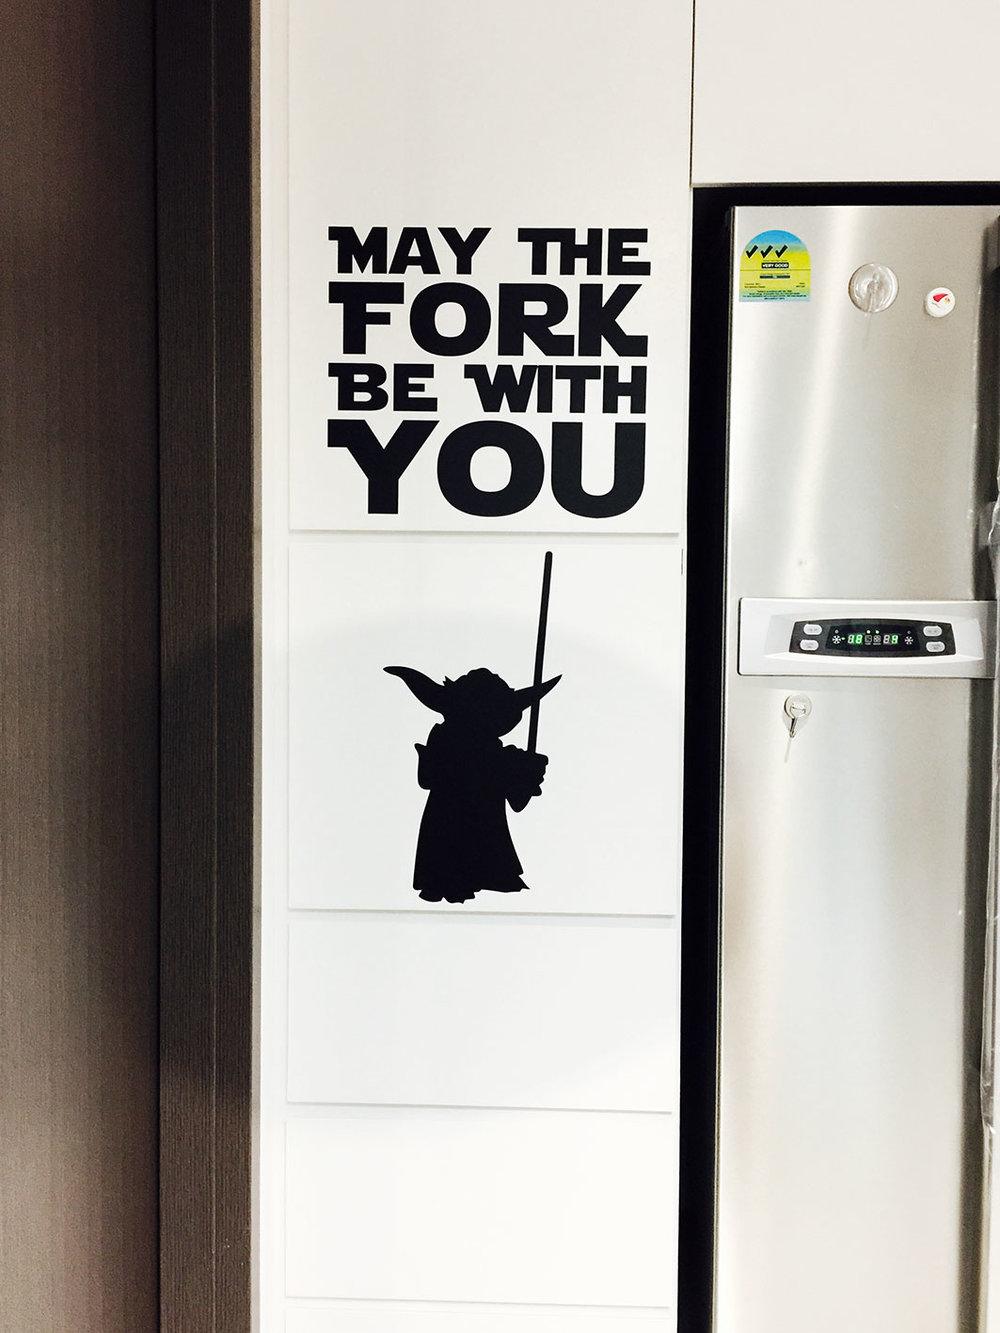 May the FORK be with you. EAT, YOU MUST.